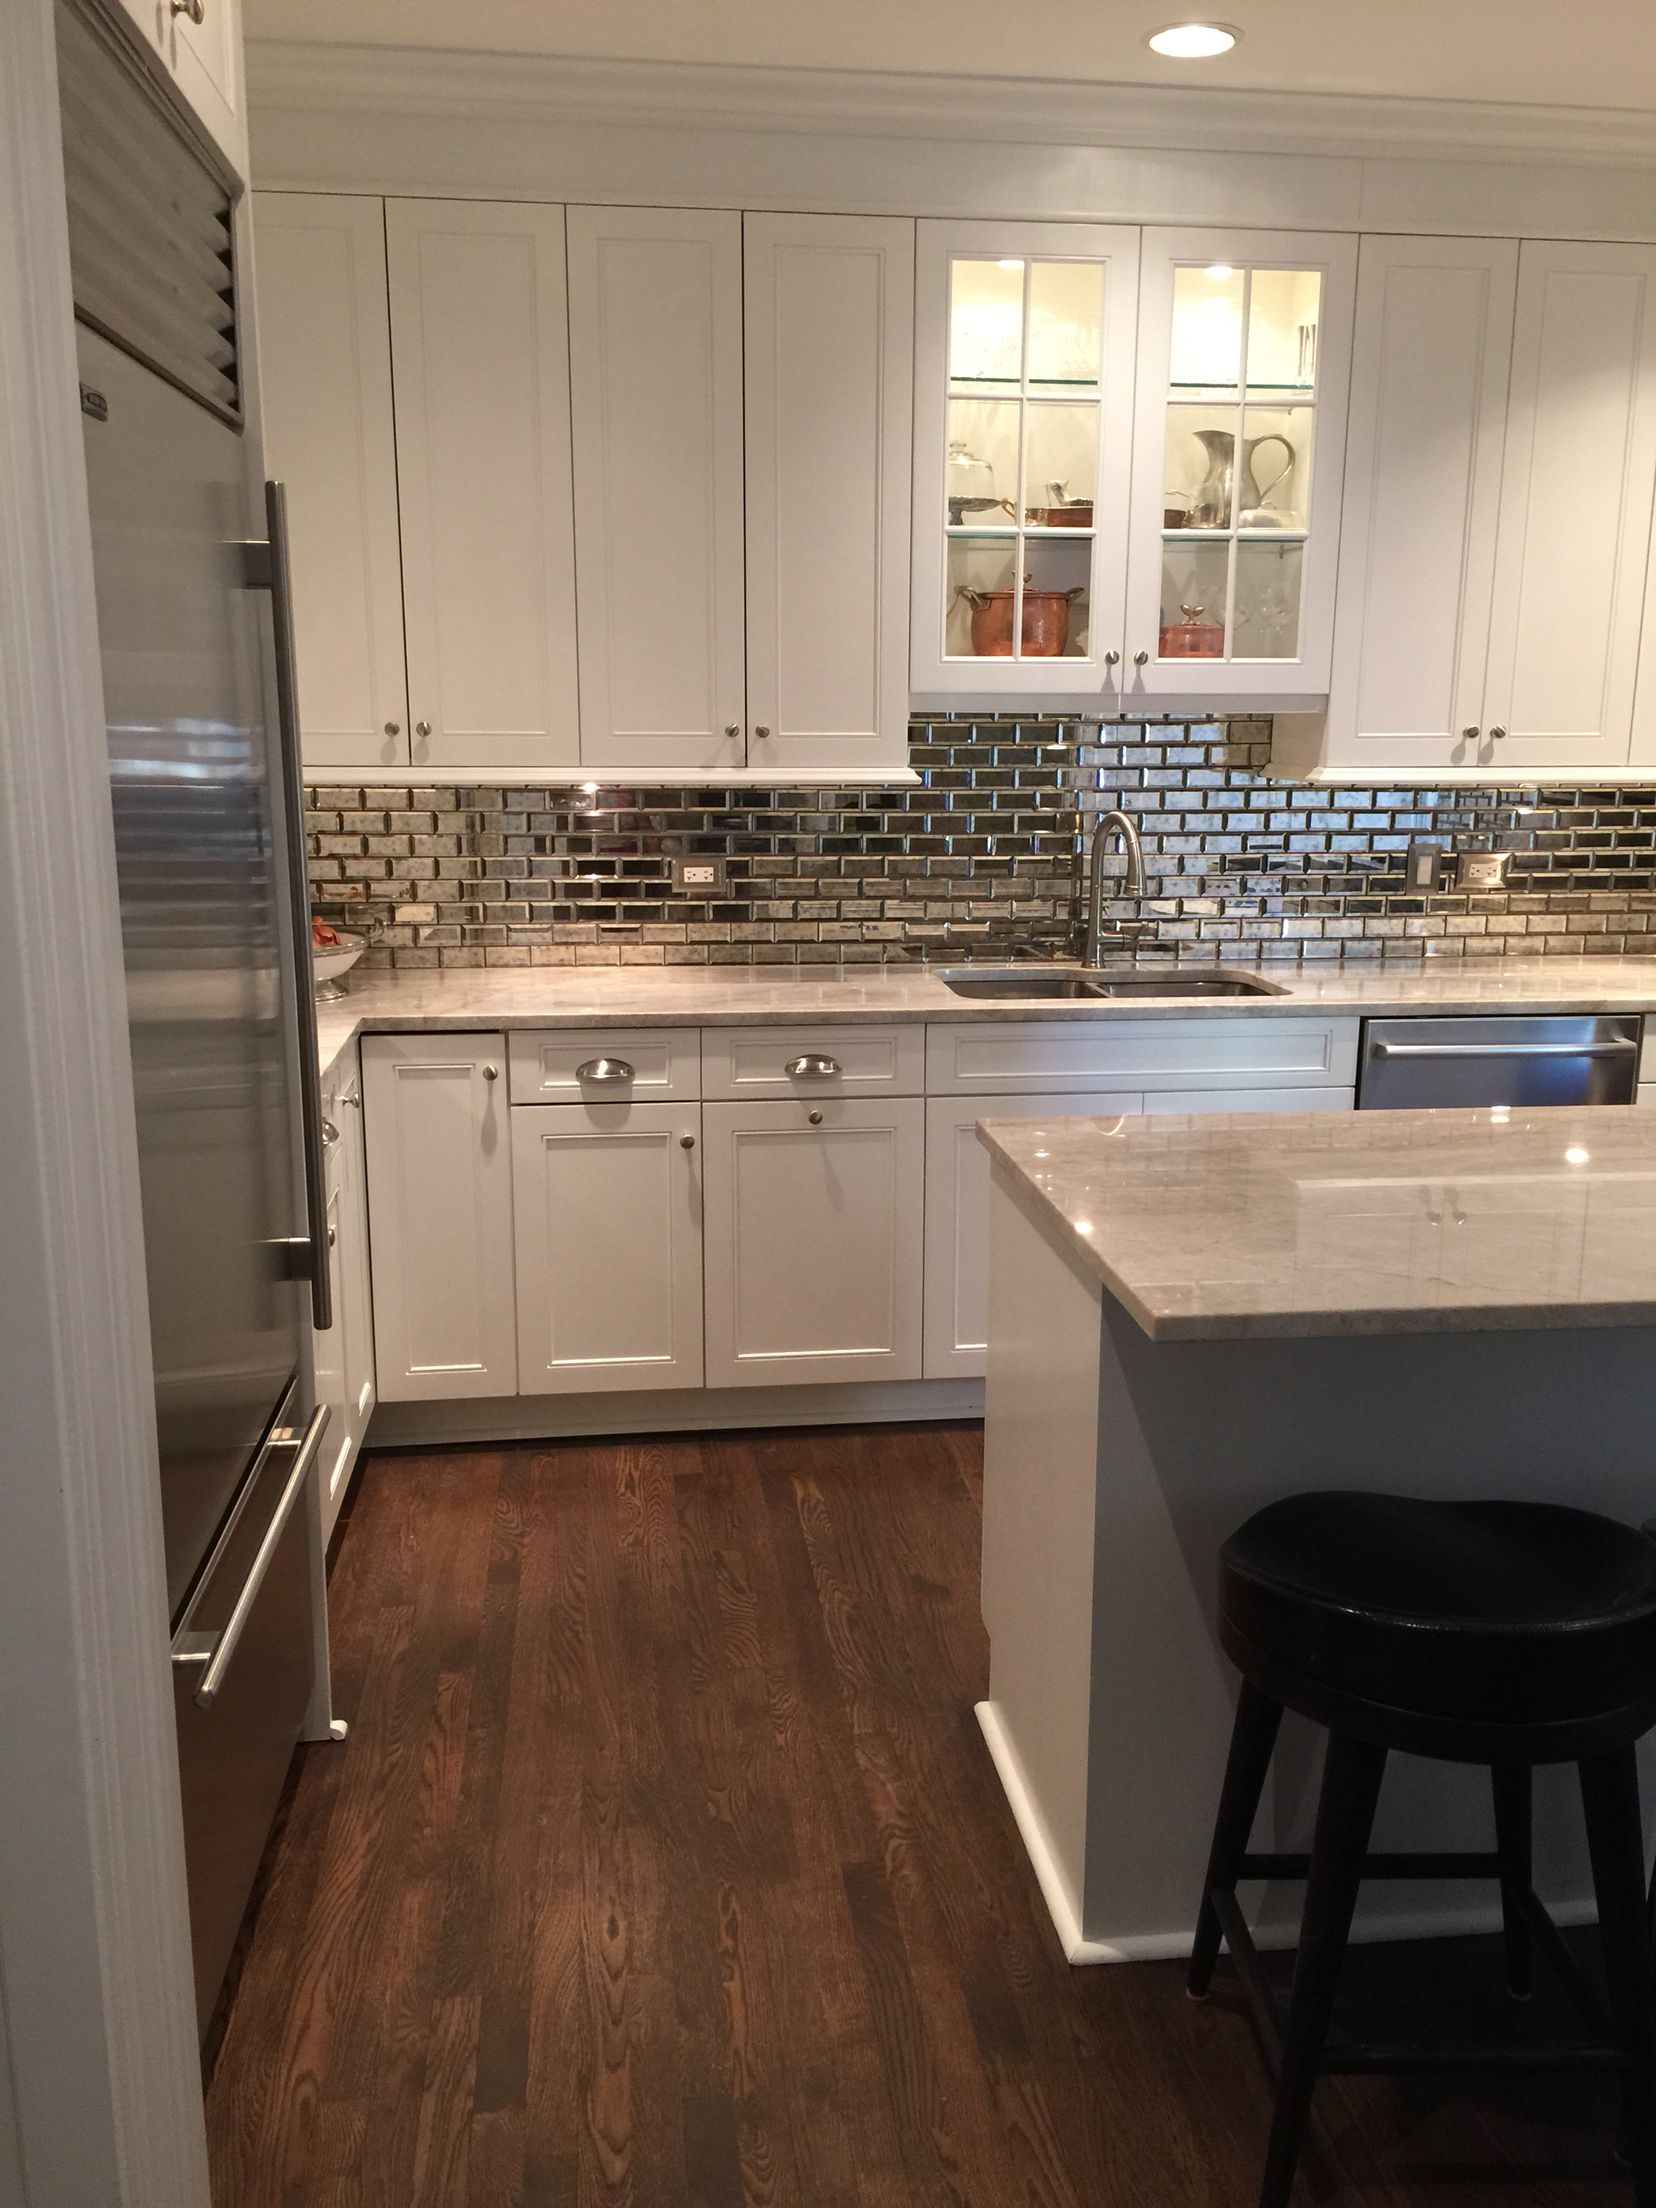 Exceptional White Kitchen Backslash 2016. Antique Mirror Subway Tiles. Unique But  Classic Style.